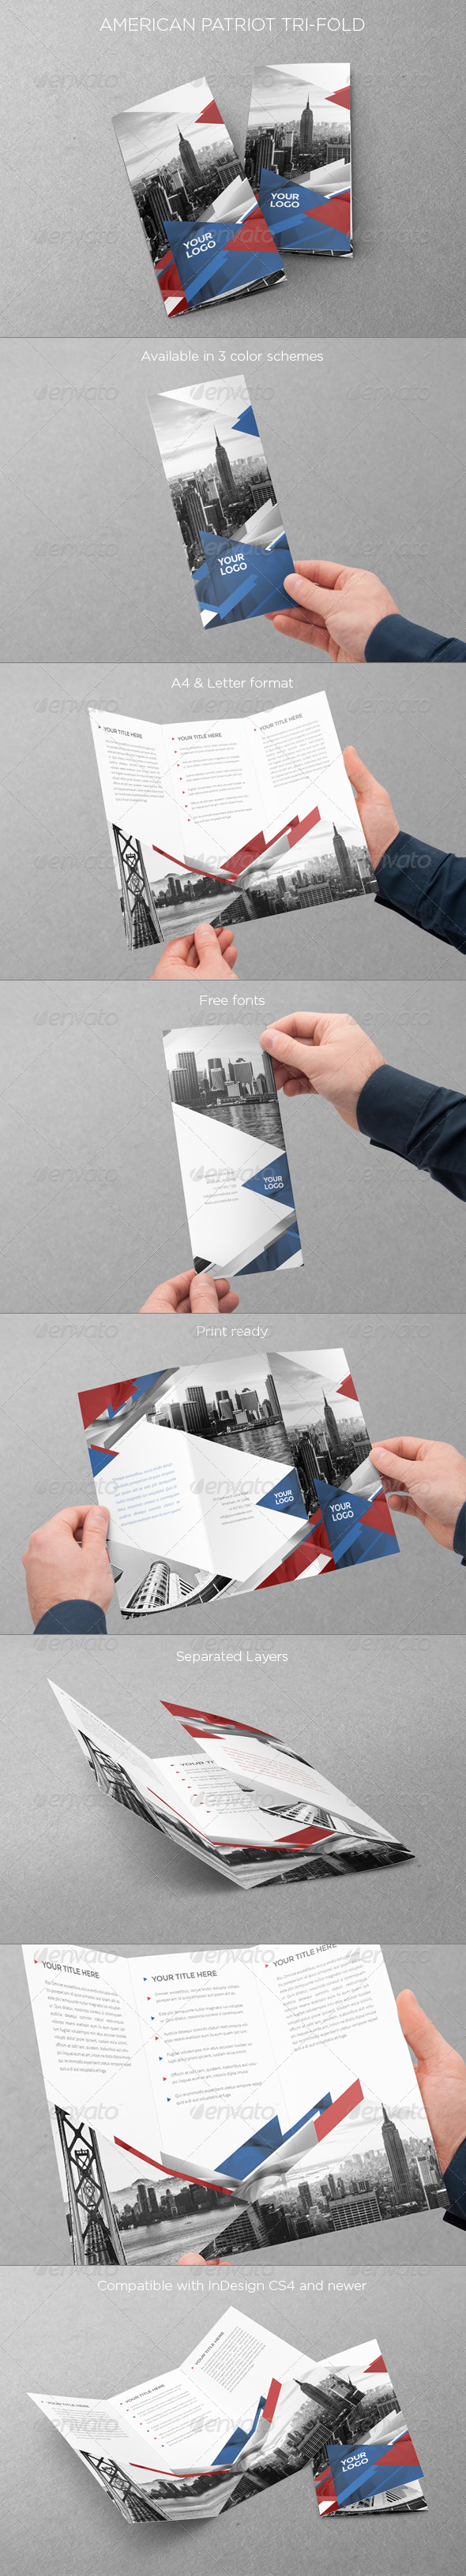 American Patriot Trifold - Informational Brochures